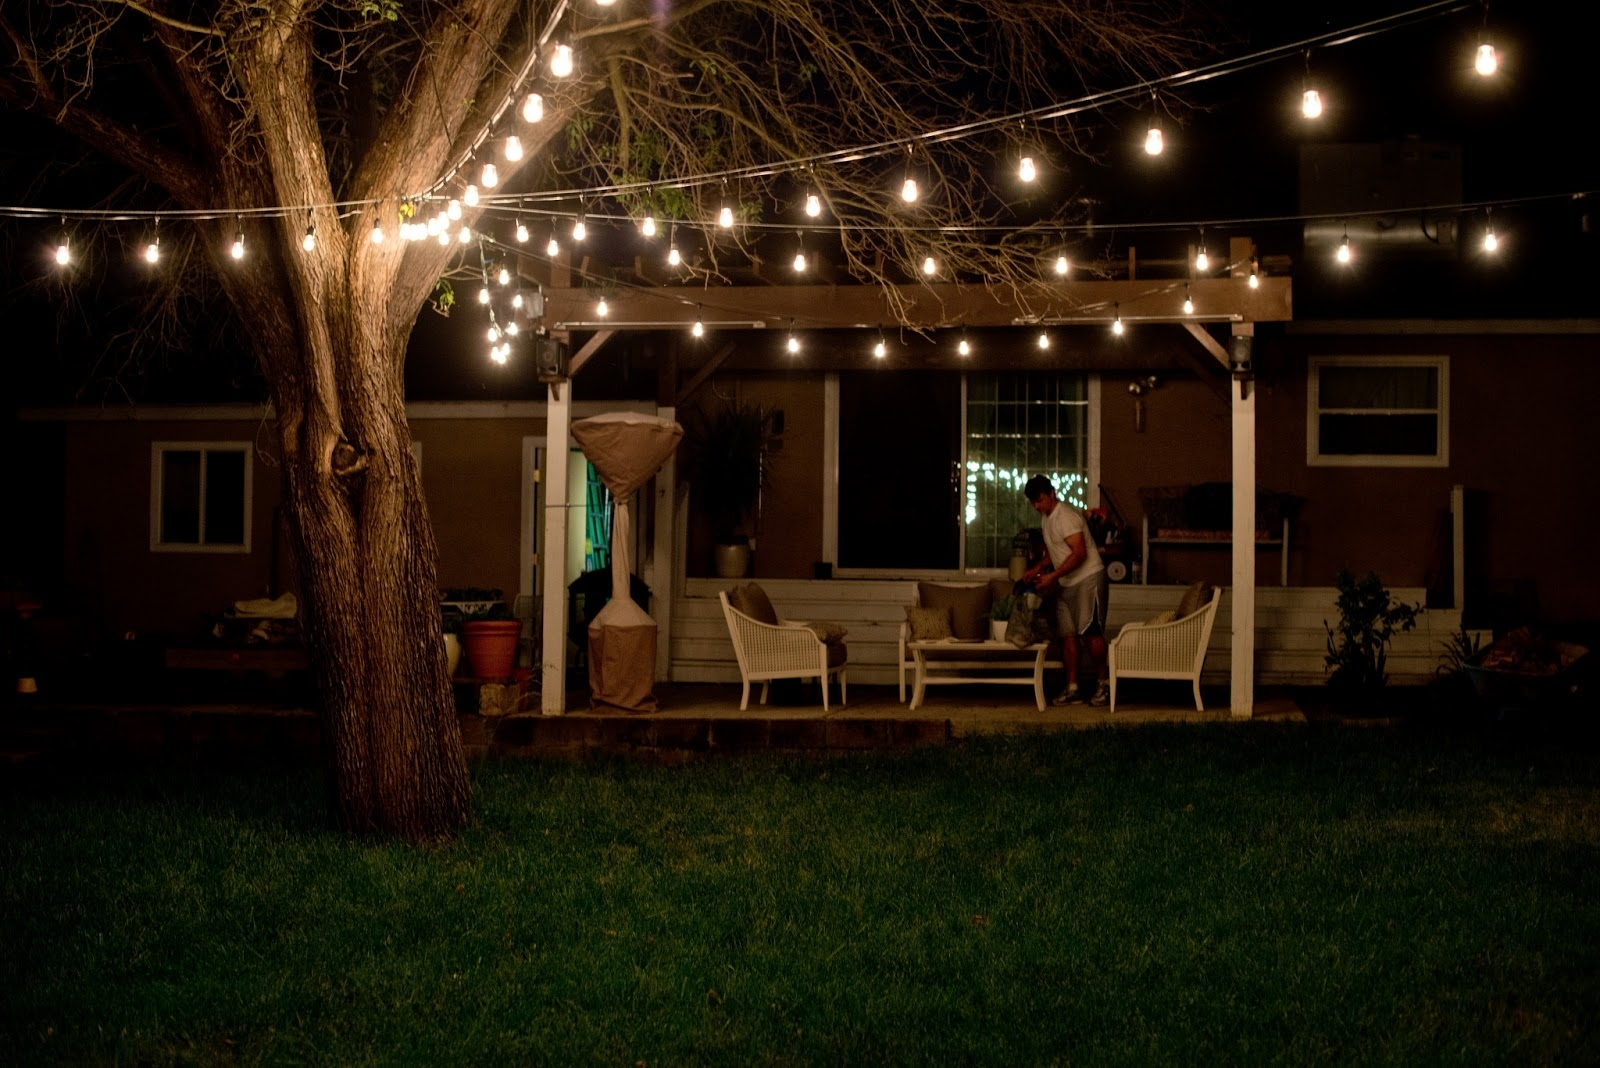 Incredible Hanging Patio Lights The Benefits Of Outdoor Patio Lights Throughout Newest Hanging Outdoor Lights In Backyard (View 14 of 20)